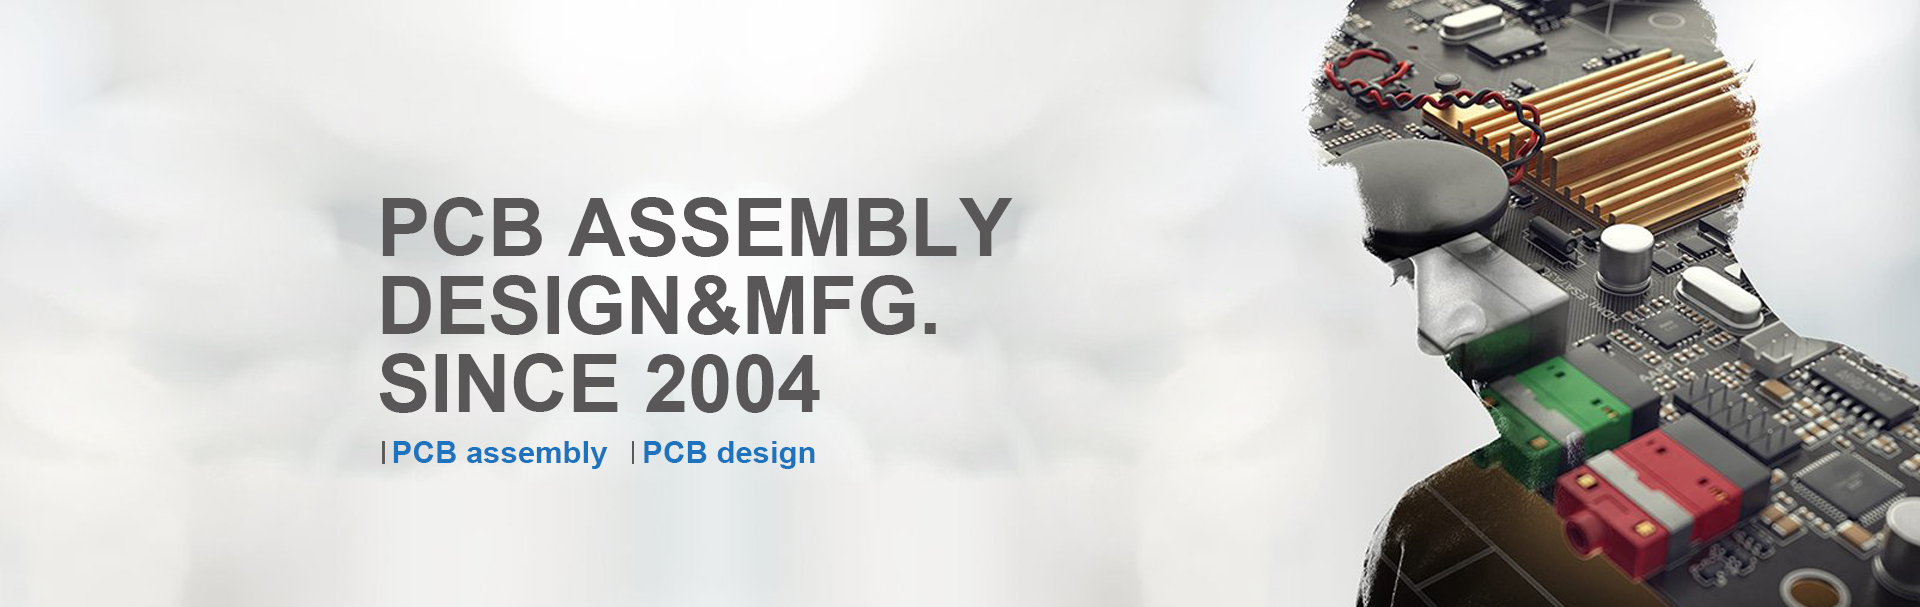 PCB Assembly & Design Services Company